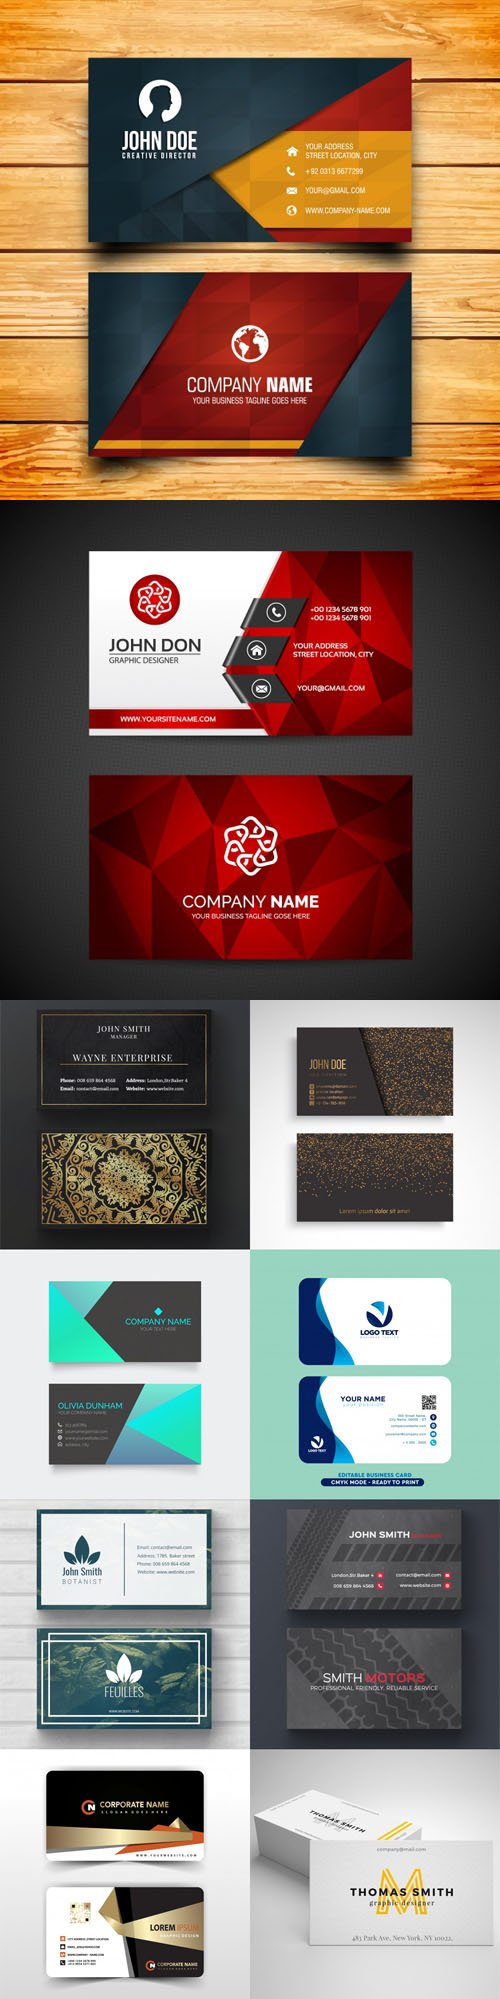 10 Modern Professional Business Cards Templates in [EPS/PSD]